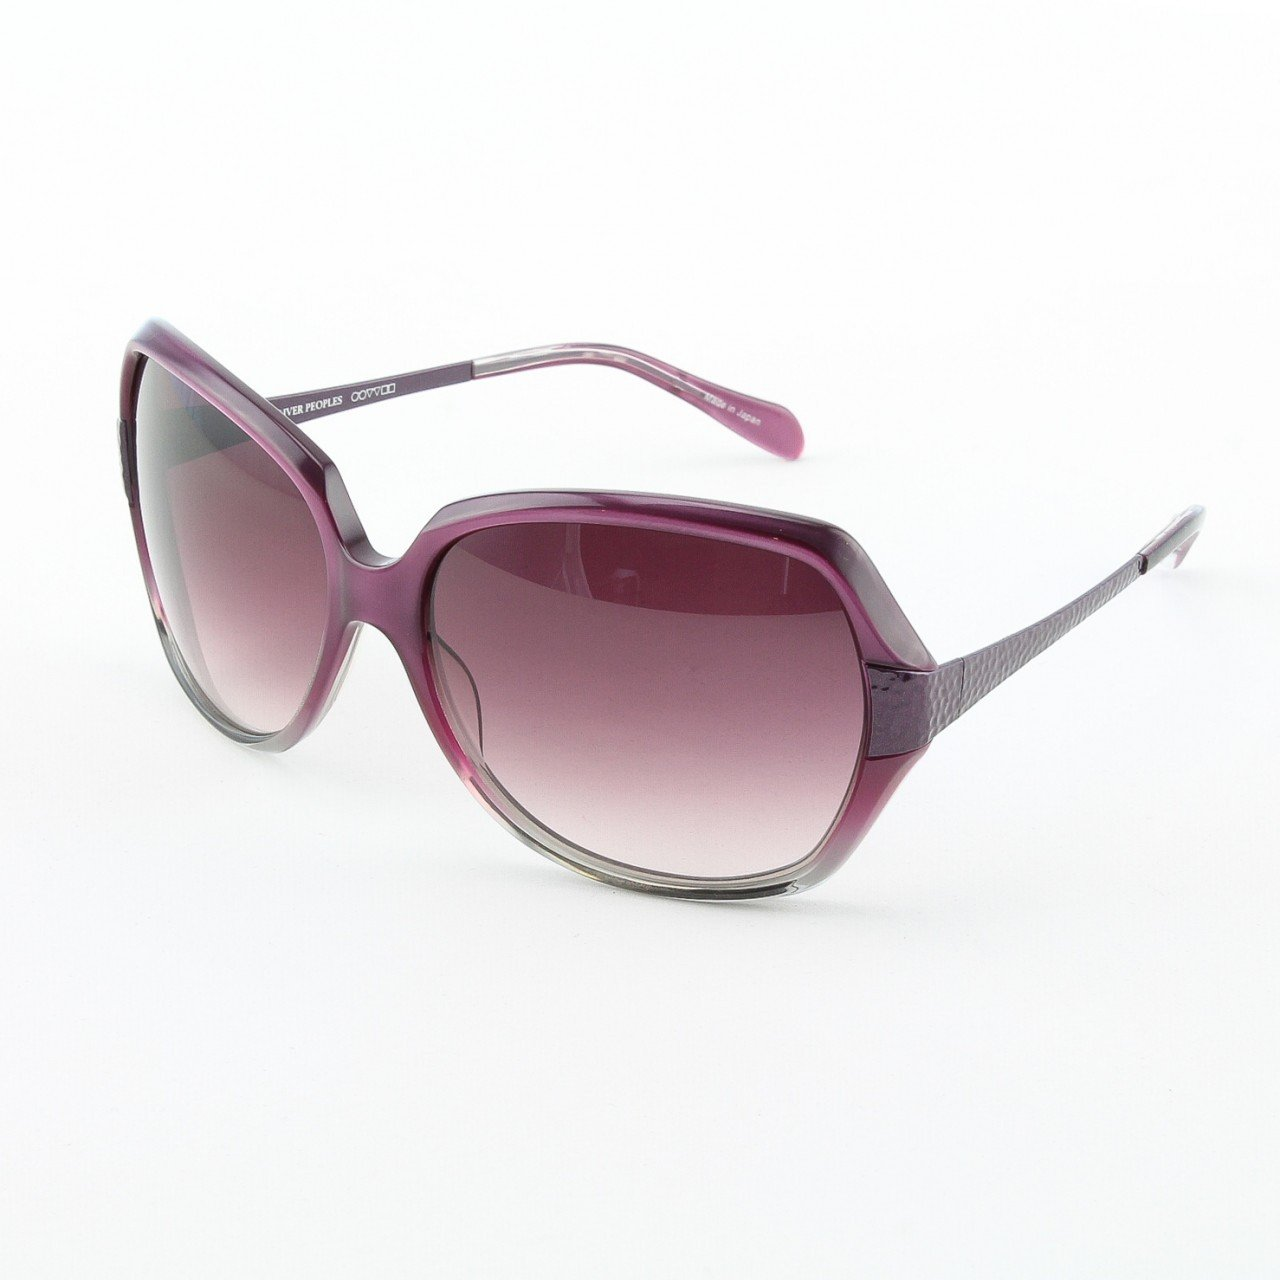 Oliver Peoples Guiselle Sunglasses Col. AMEGR Amethyst with purple Gradient Lenses